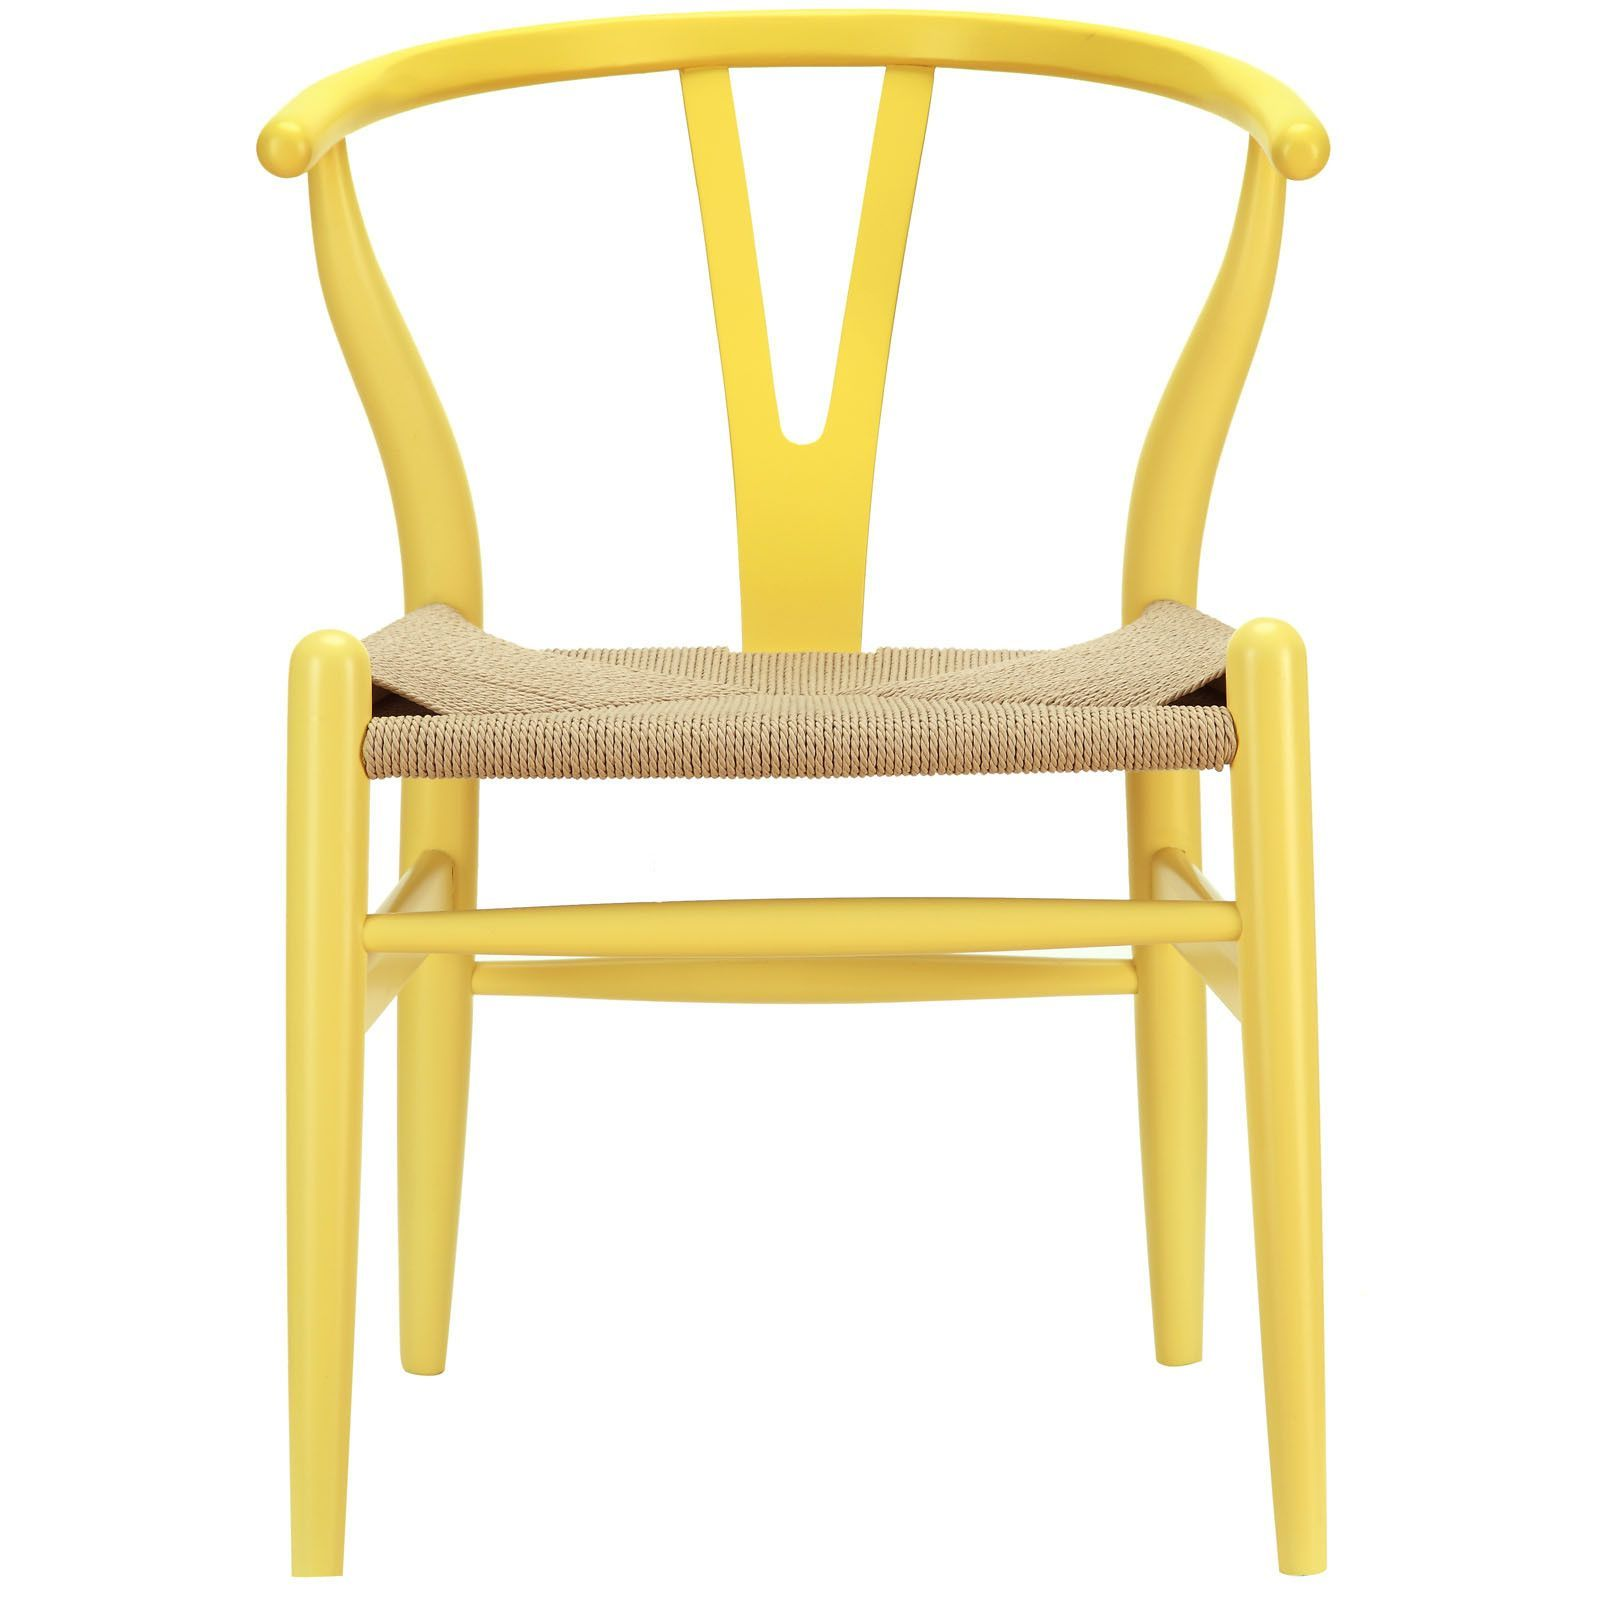 LexMod C24 Wishbone Chair in Yellow The sands of times flow effortlessly through the Hourglass wooden bar stool The craftsmanship is evident thro…